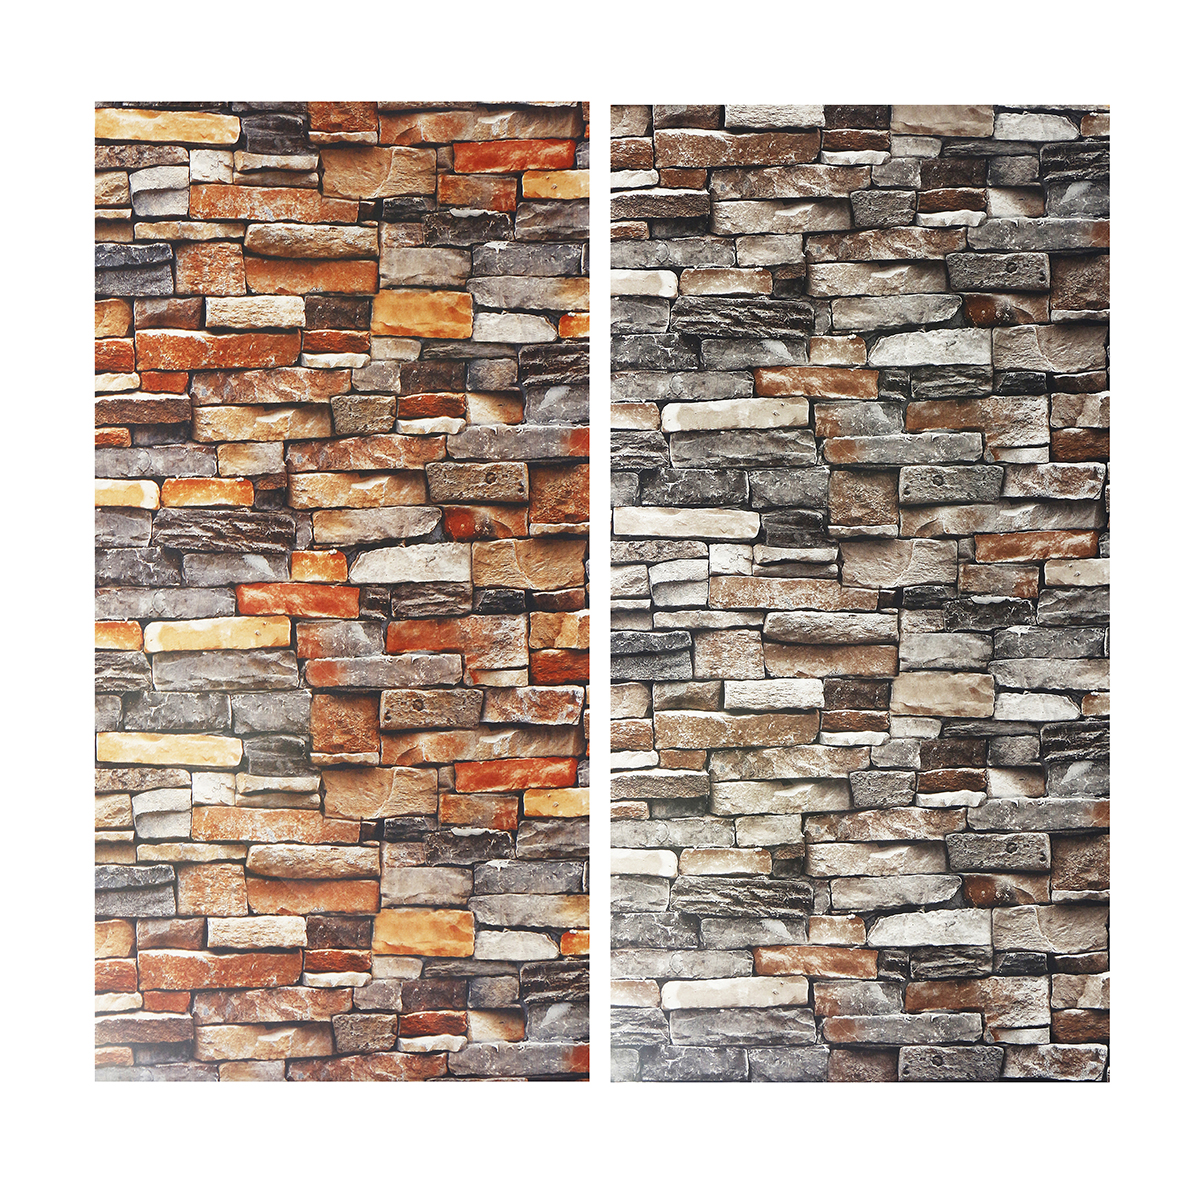 Rustic Vintage 3D Faux Brick Wallpaper Roll Vinyl Old Stone Wall Paper For Home Living Room Restaurant Cafe Decor 0.53x9.5m rustic brick wall wallpaper chinese style vintage wallcoverings home decor warm color for living room bright room ornament